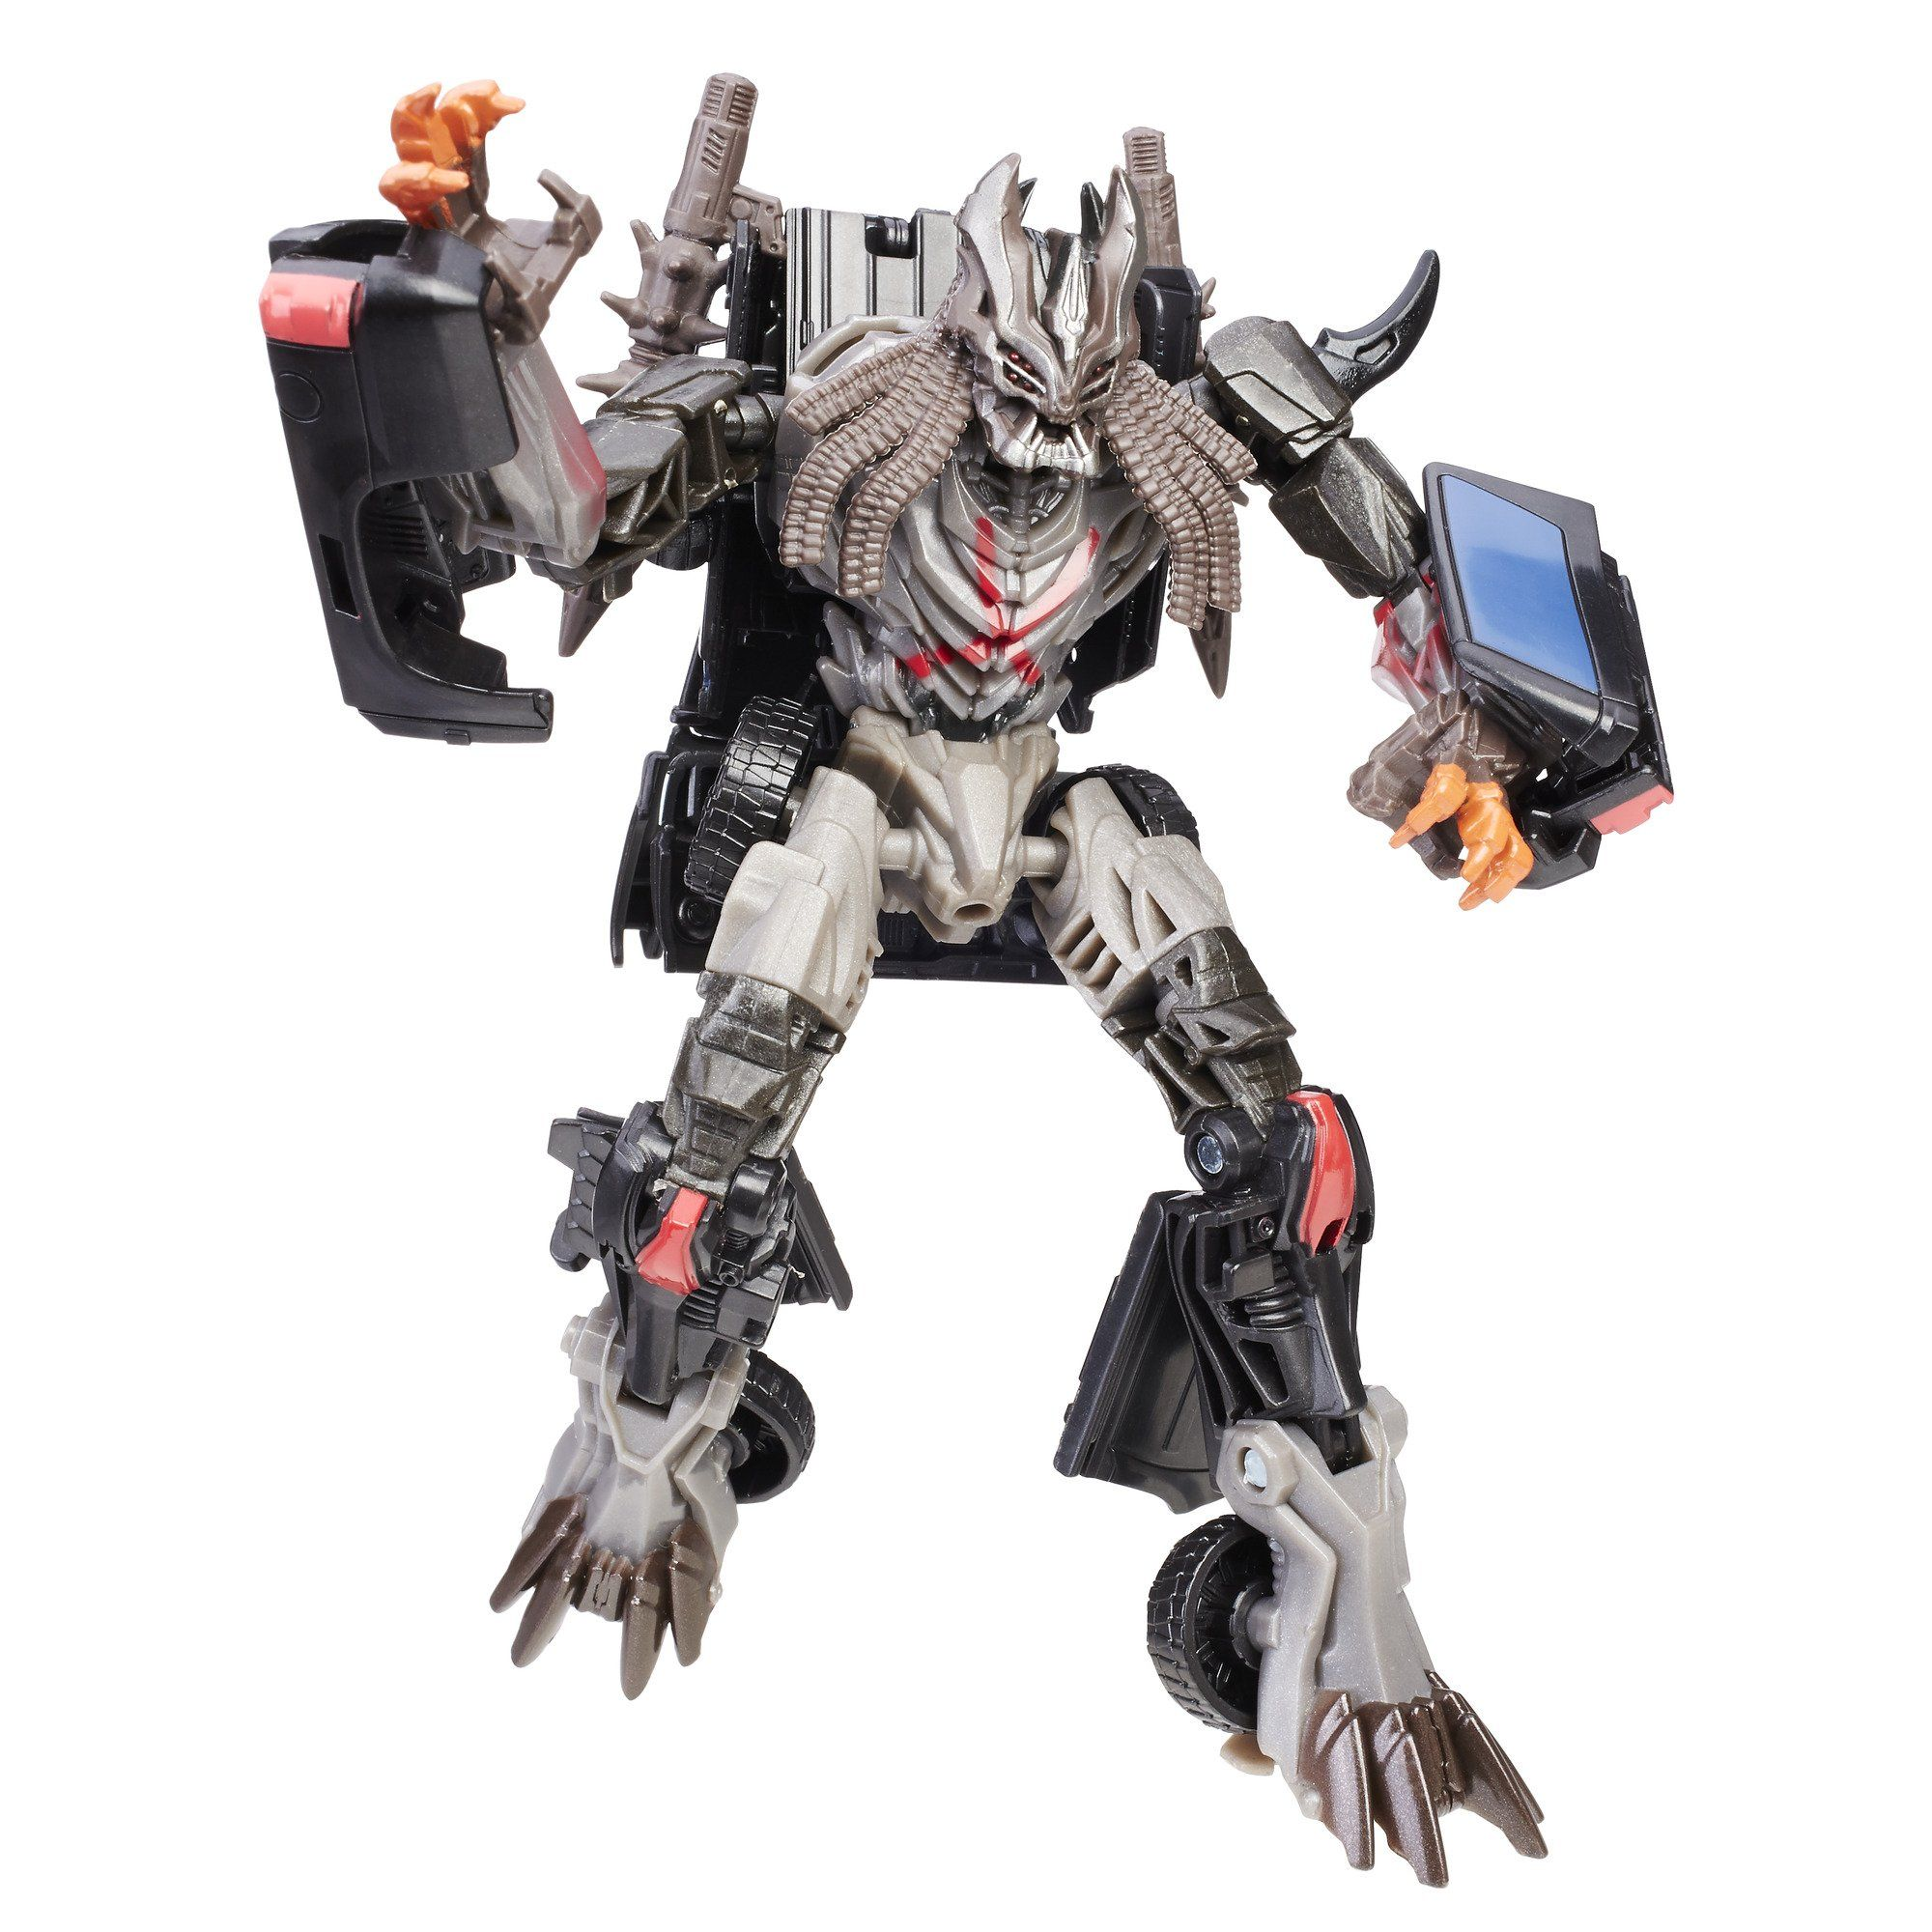 The Last Knight Premier Edition Deluxe Megatron Exclusive TRU Transformers